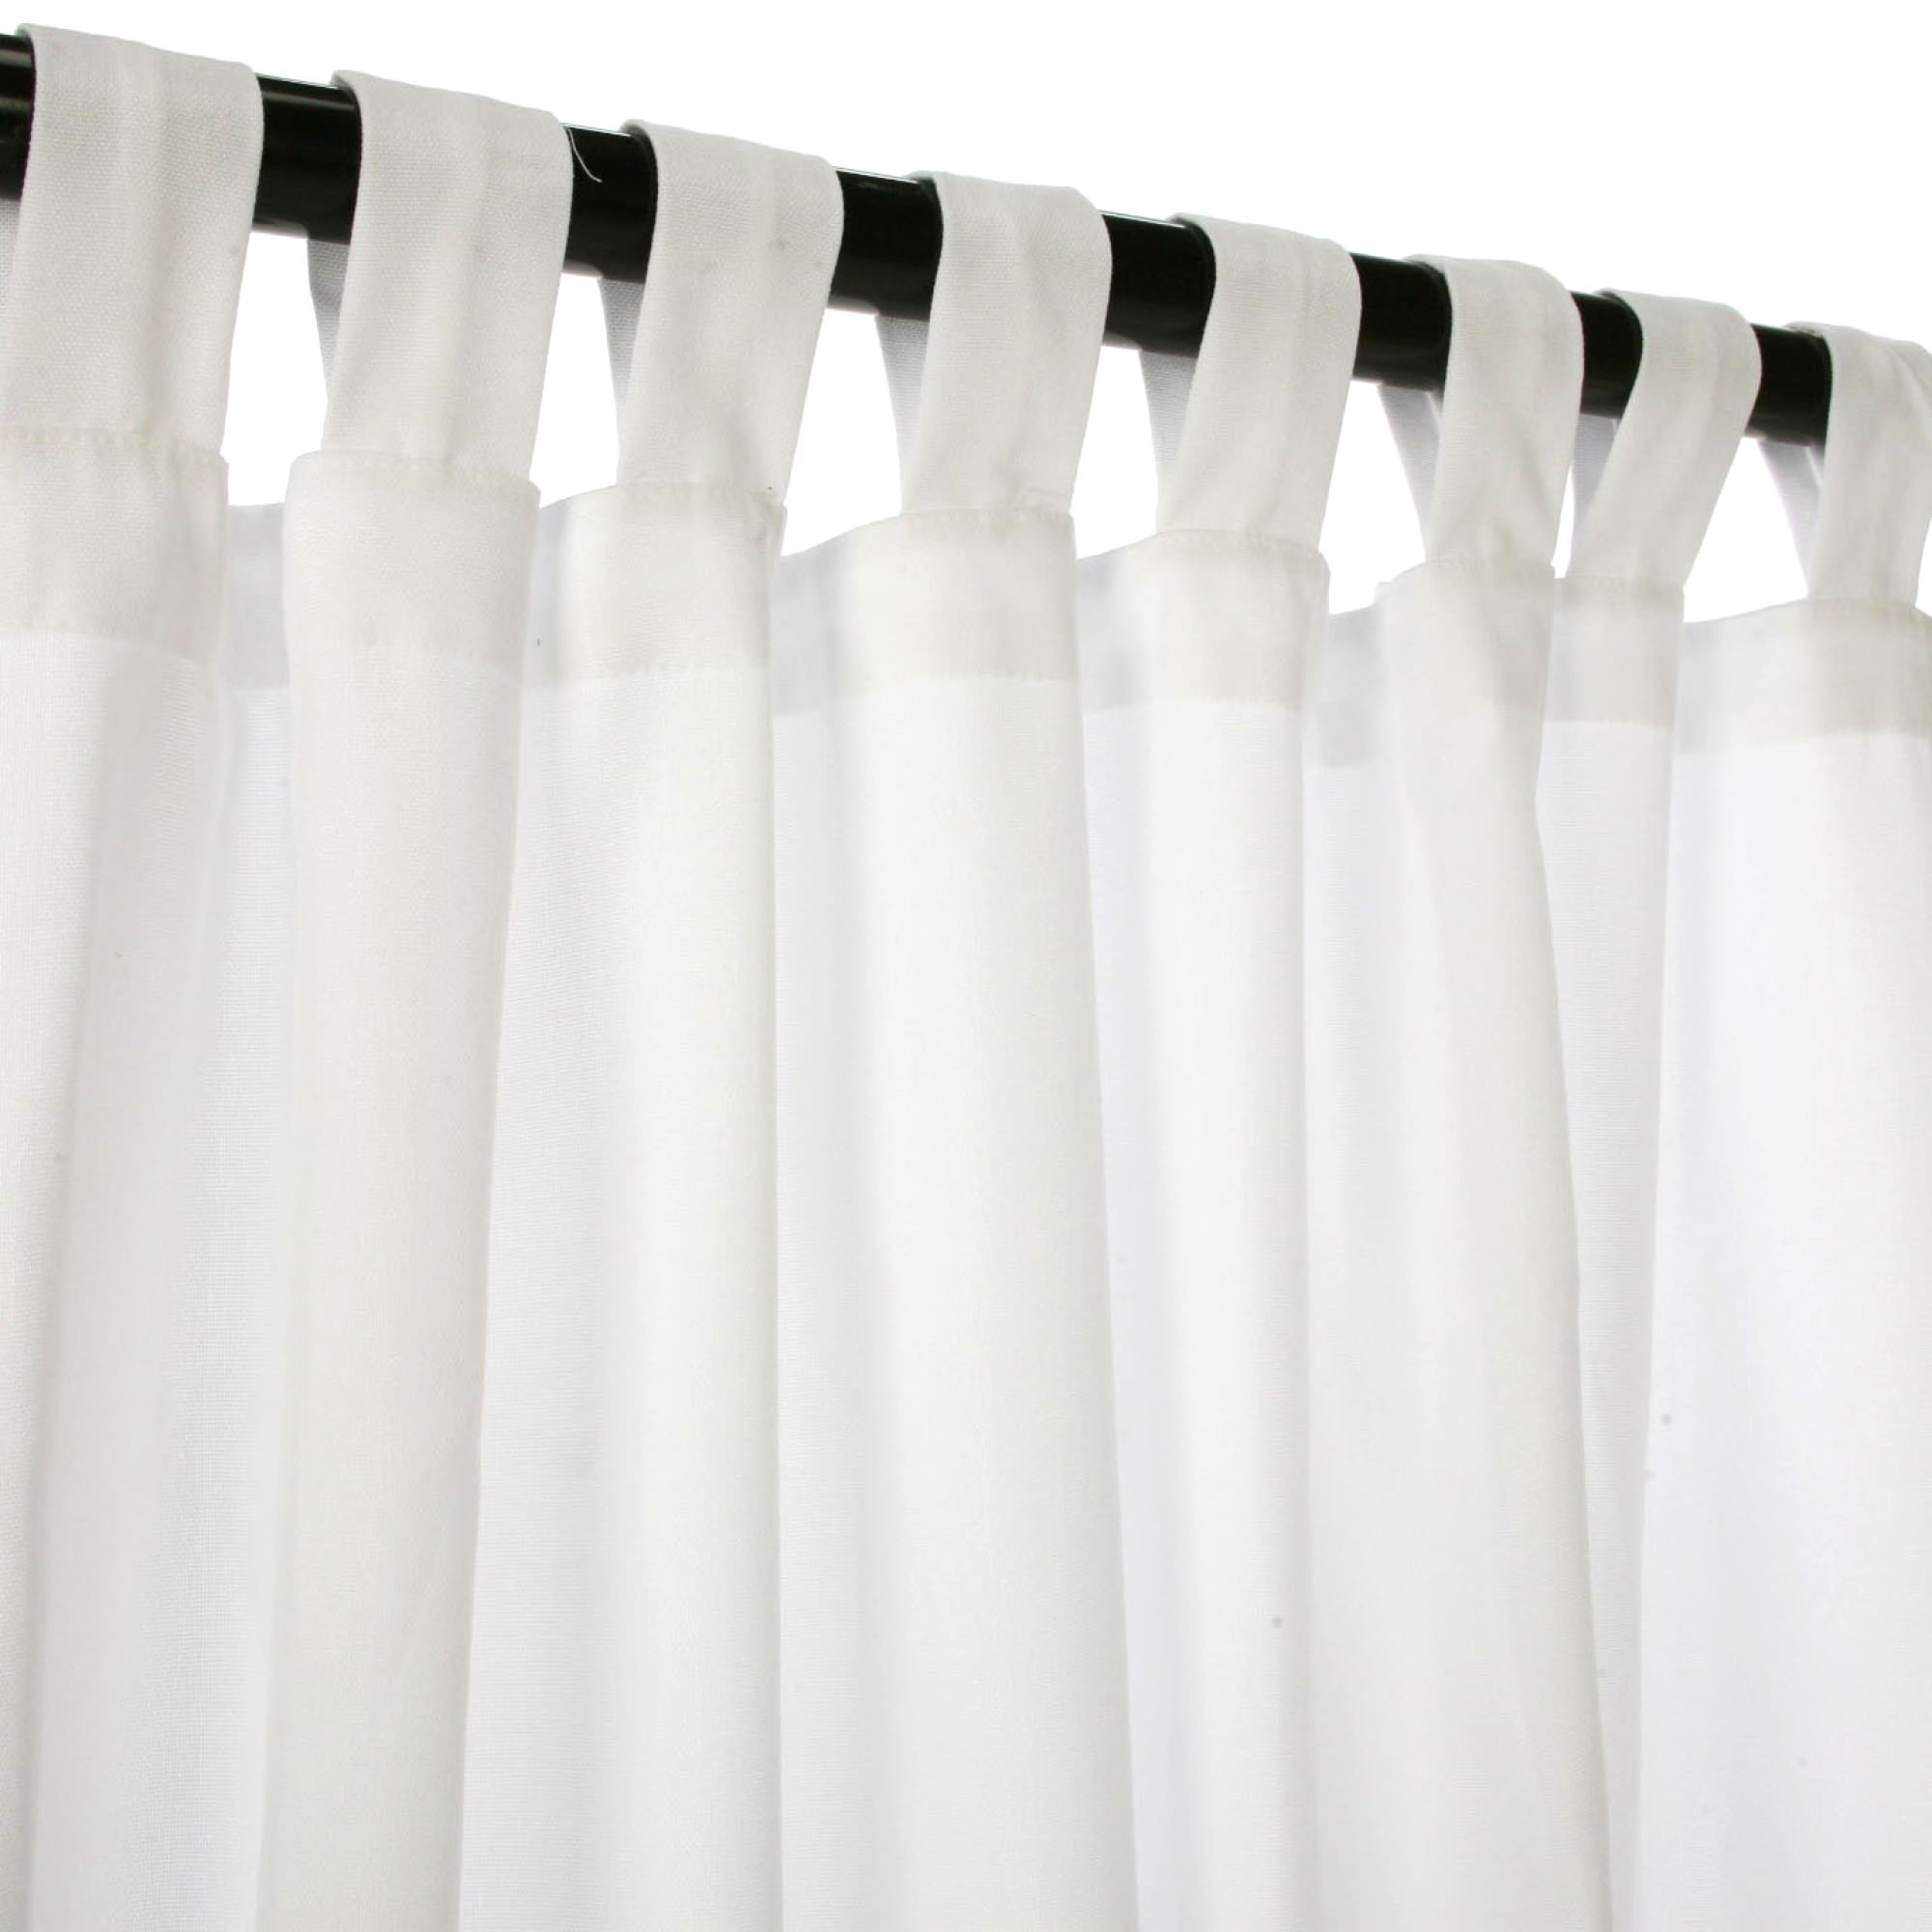 Best Fabric For Curtain Lining DIY Outdoor Curtains